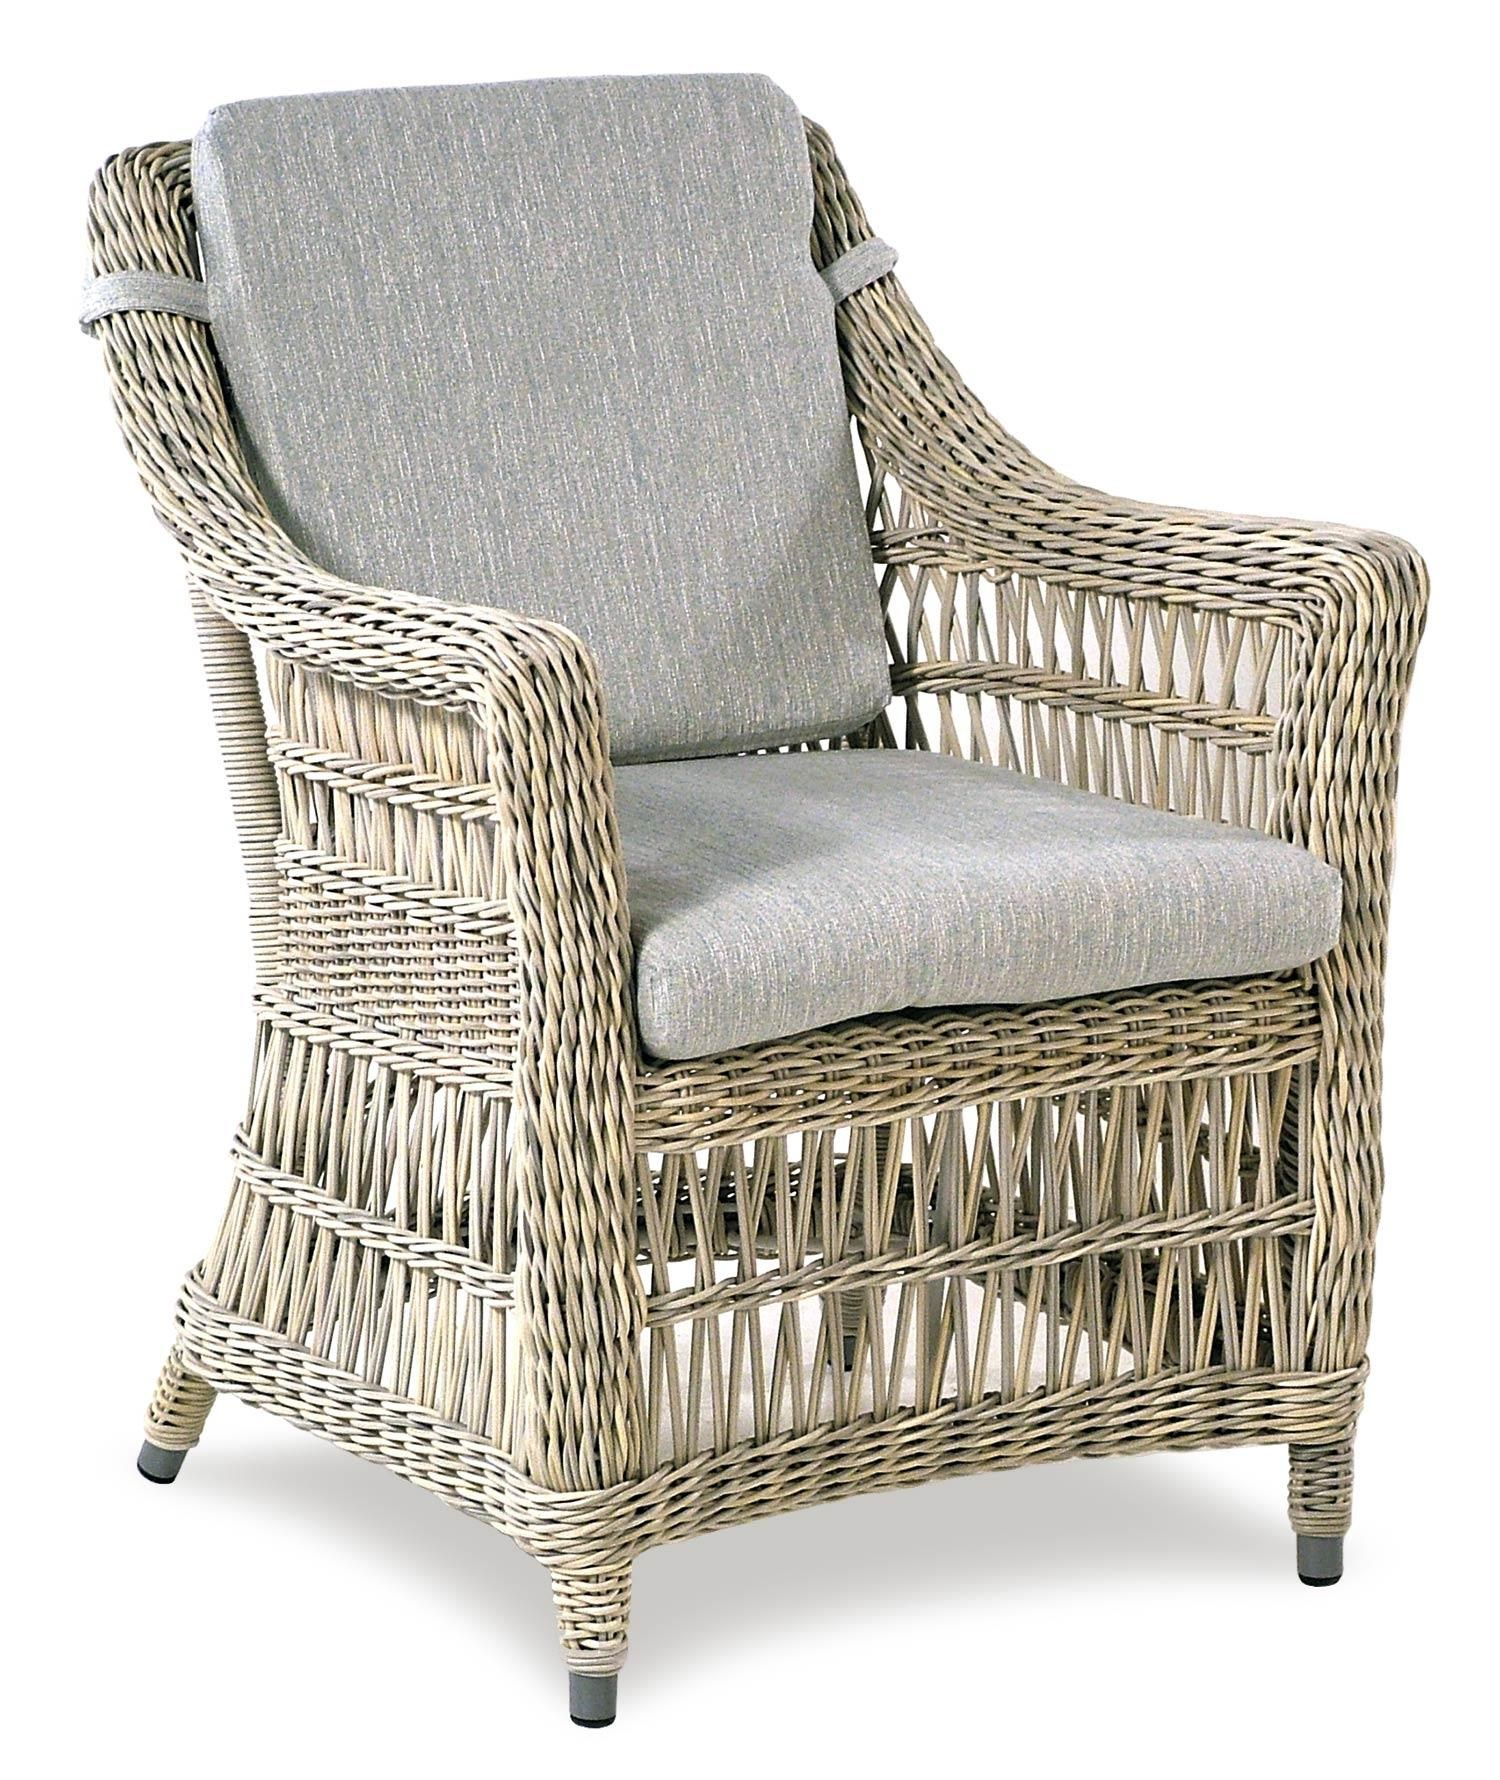 Outdoor/Patio Arm Chair